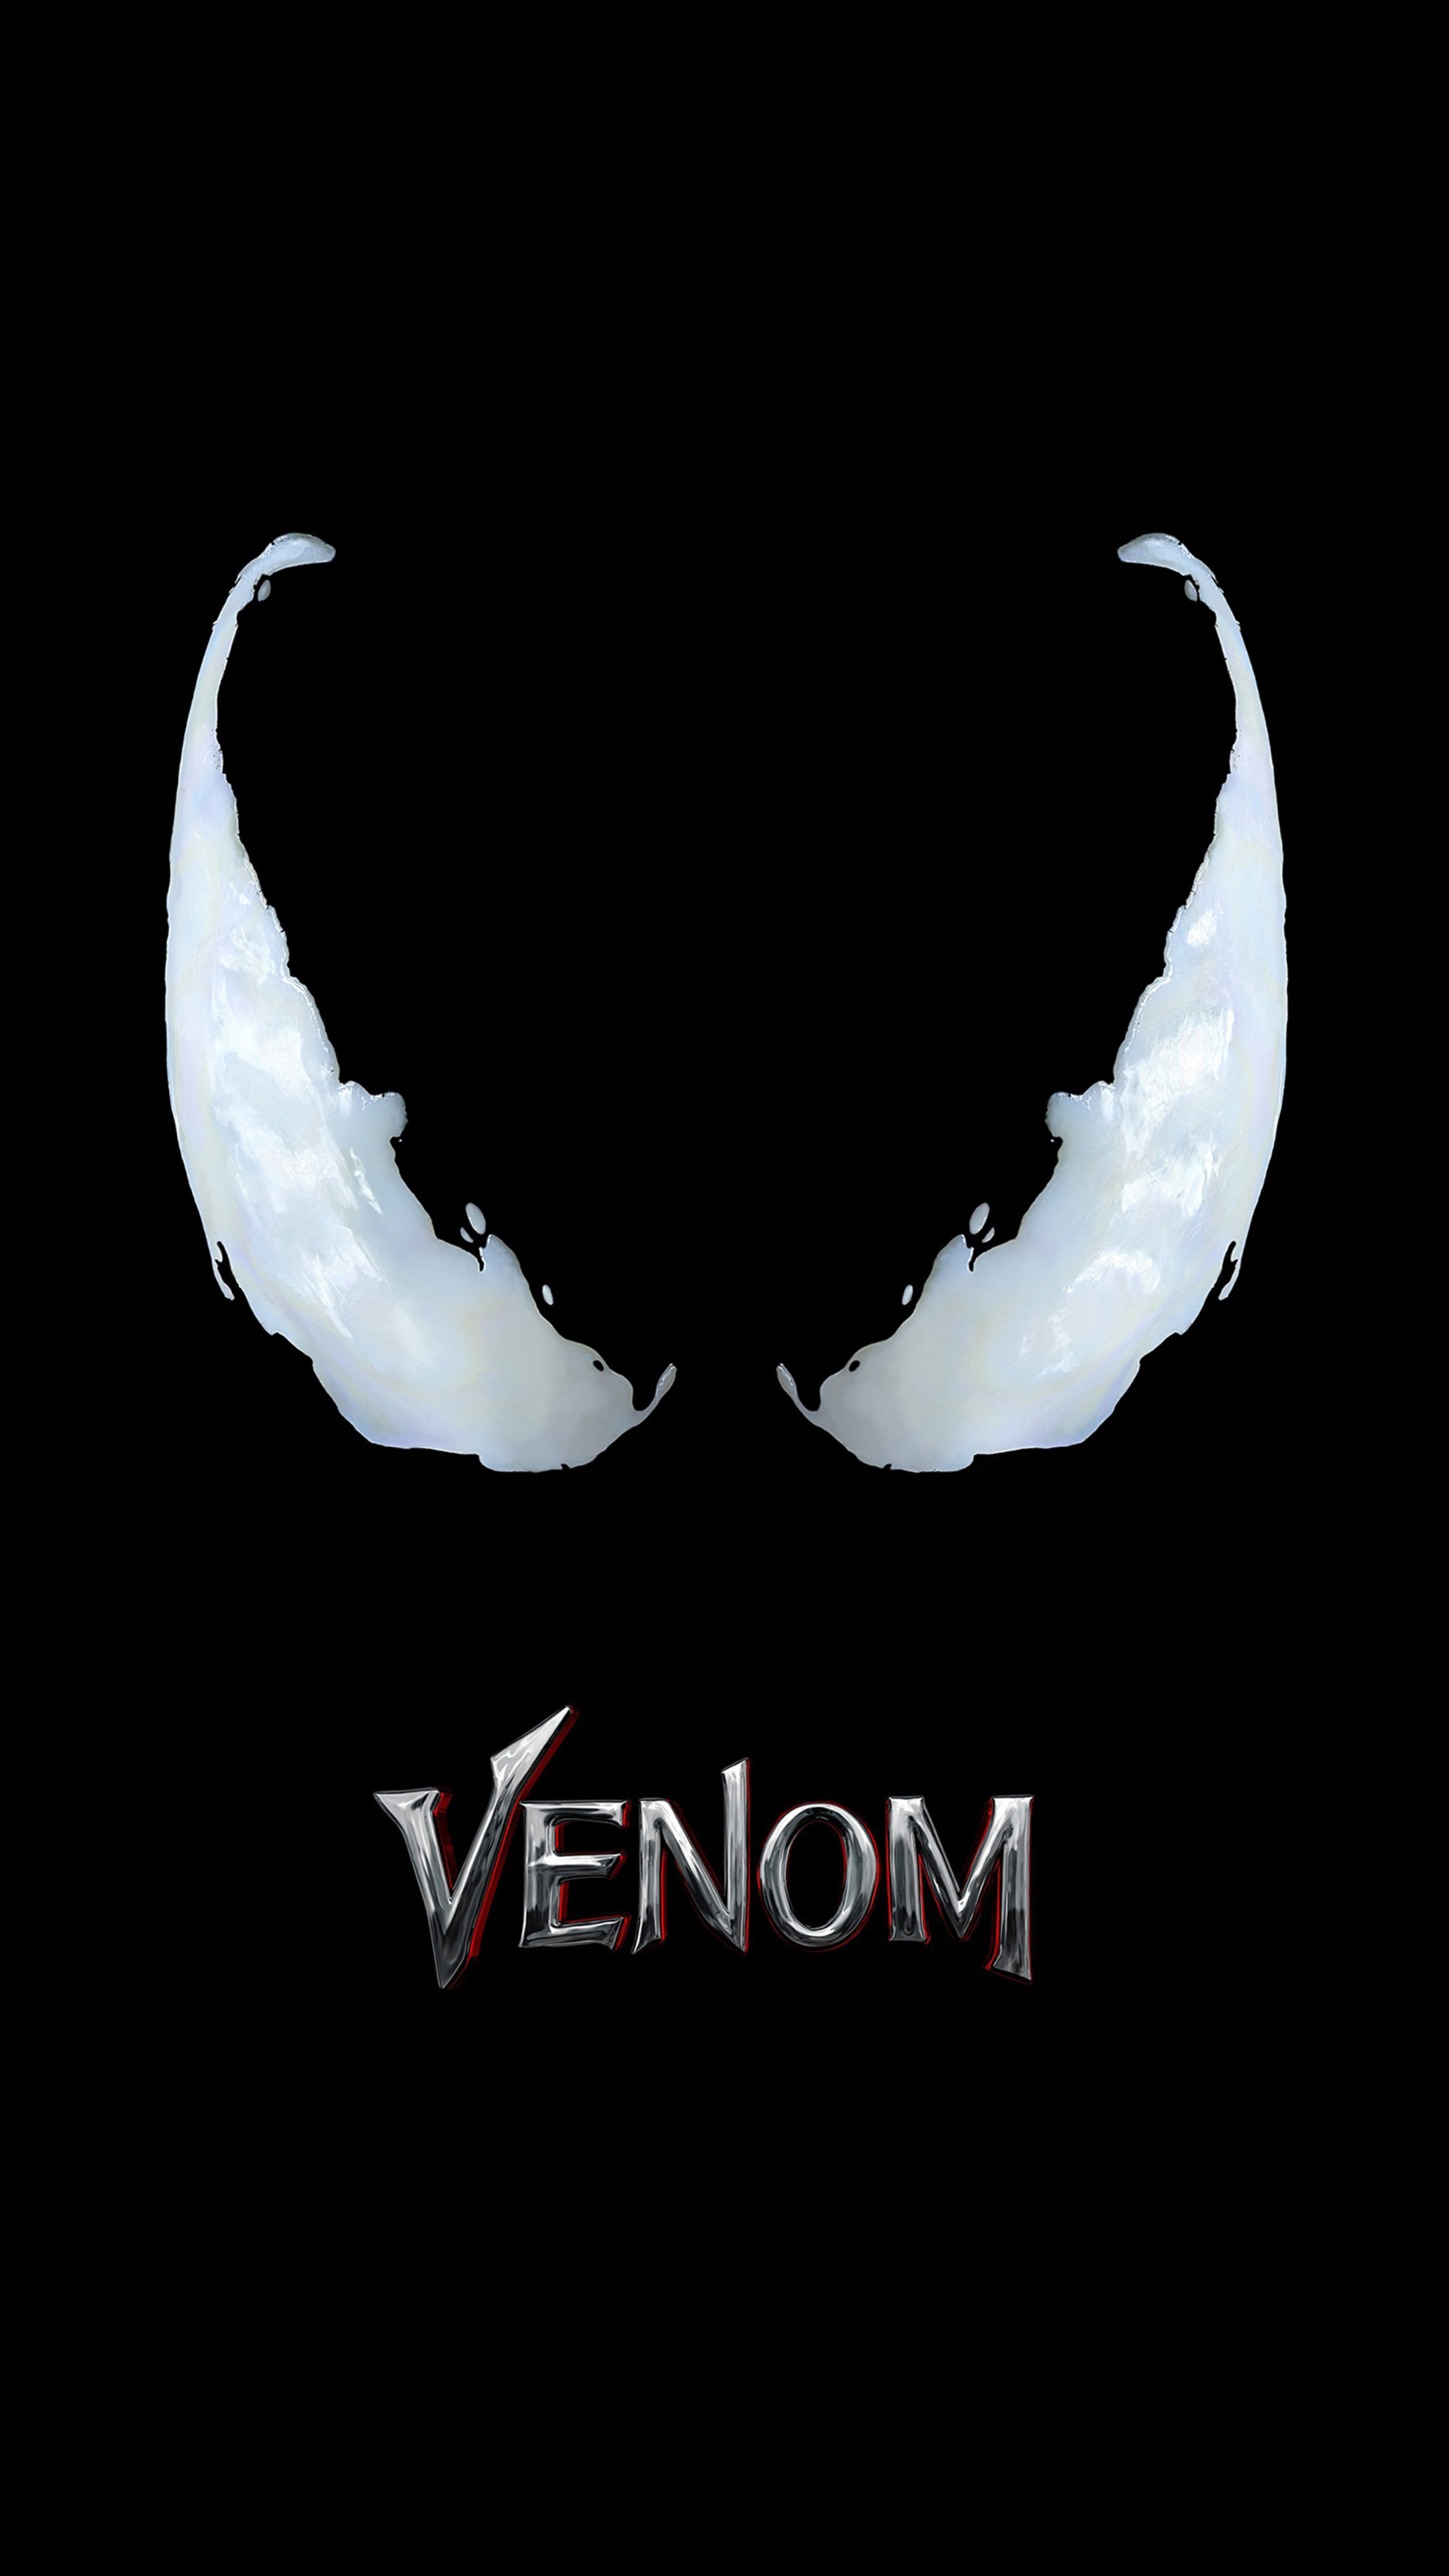 2160x3840 Venom Movie Logo 4k Sony Xperia X,XZ,Z5 Premium HD